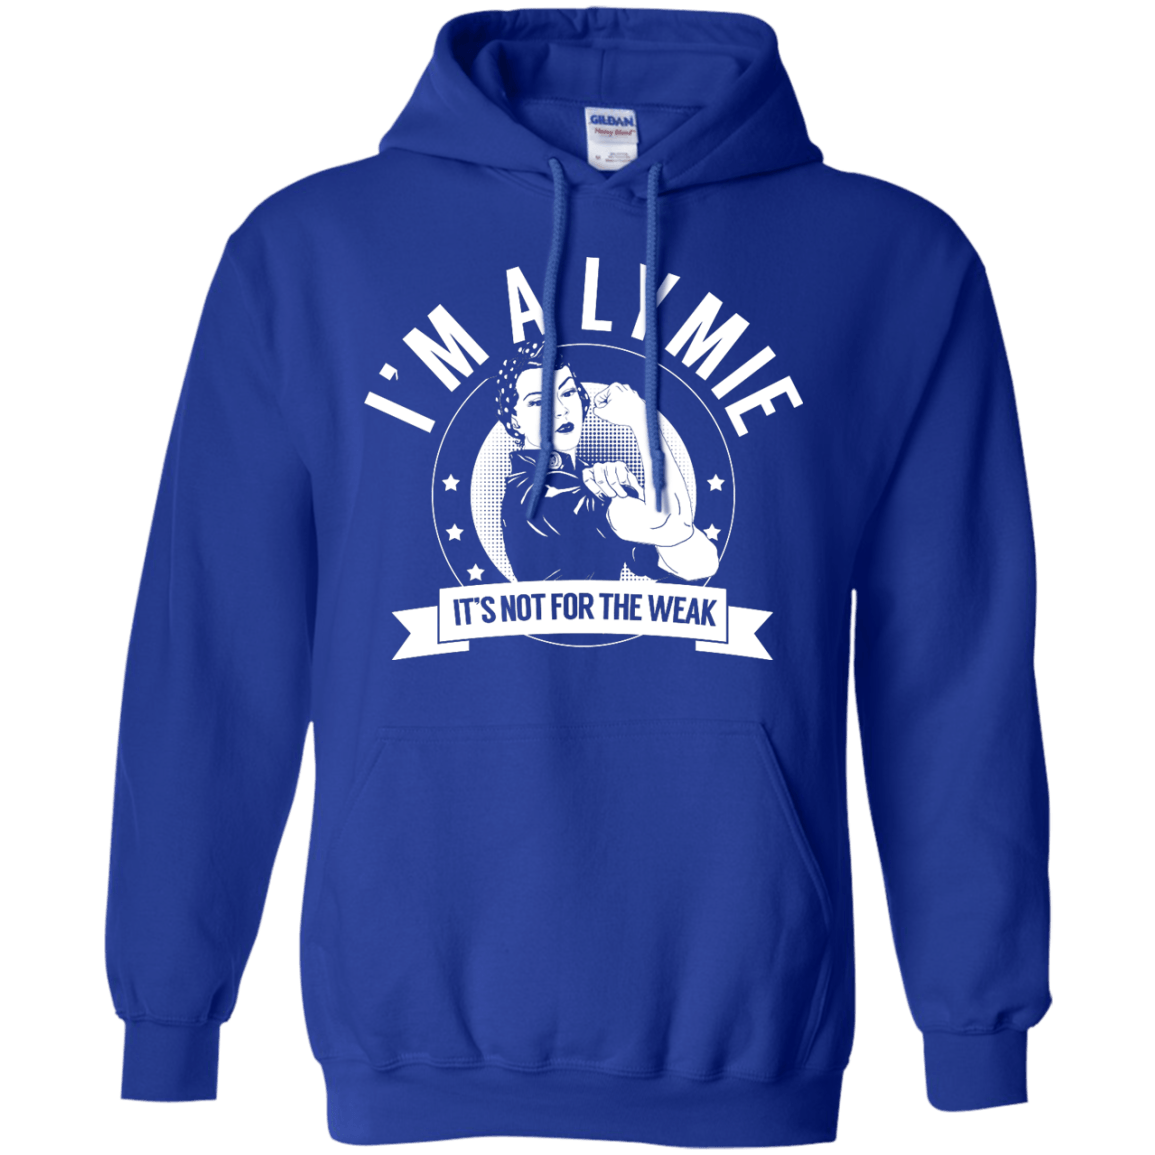 Lyme Disease - Lymie Not For The Weak Pullover Hoodie 8 oz - The Unchargeables